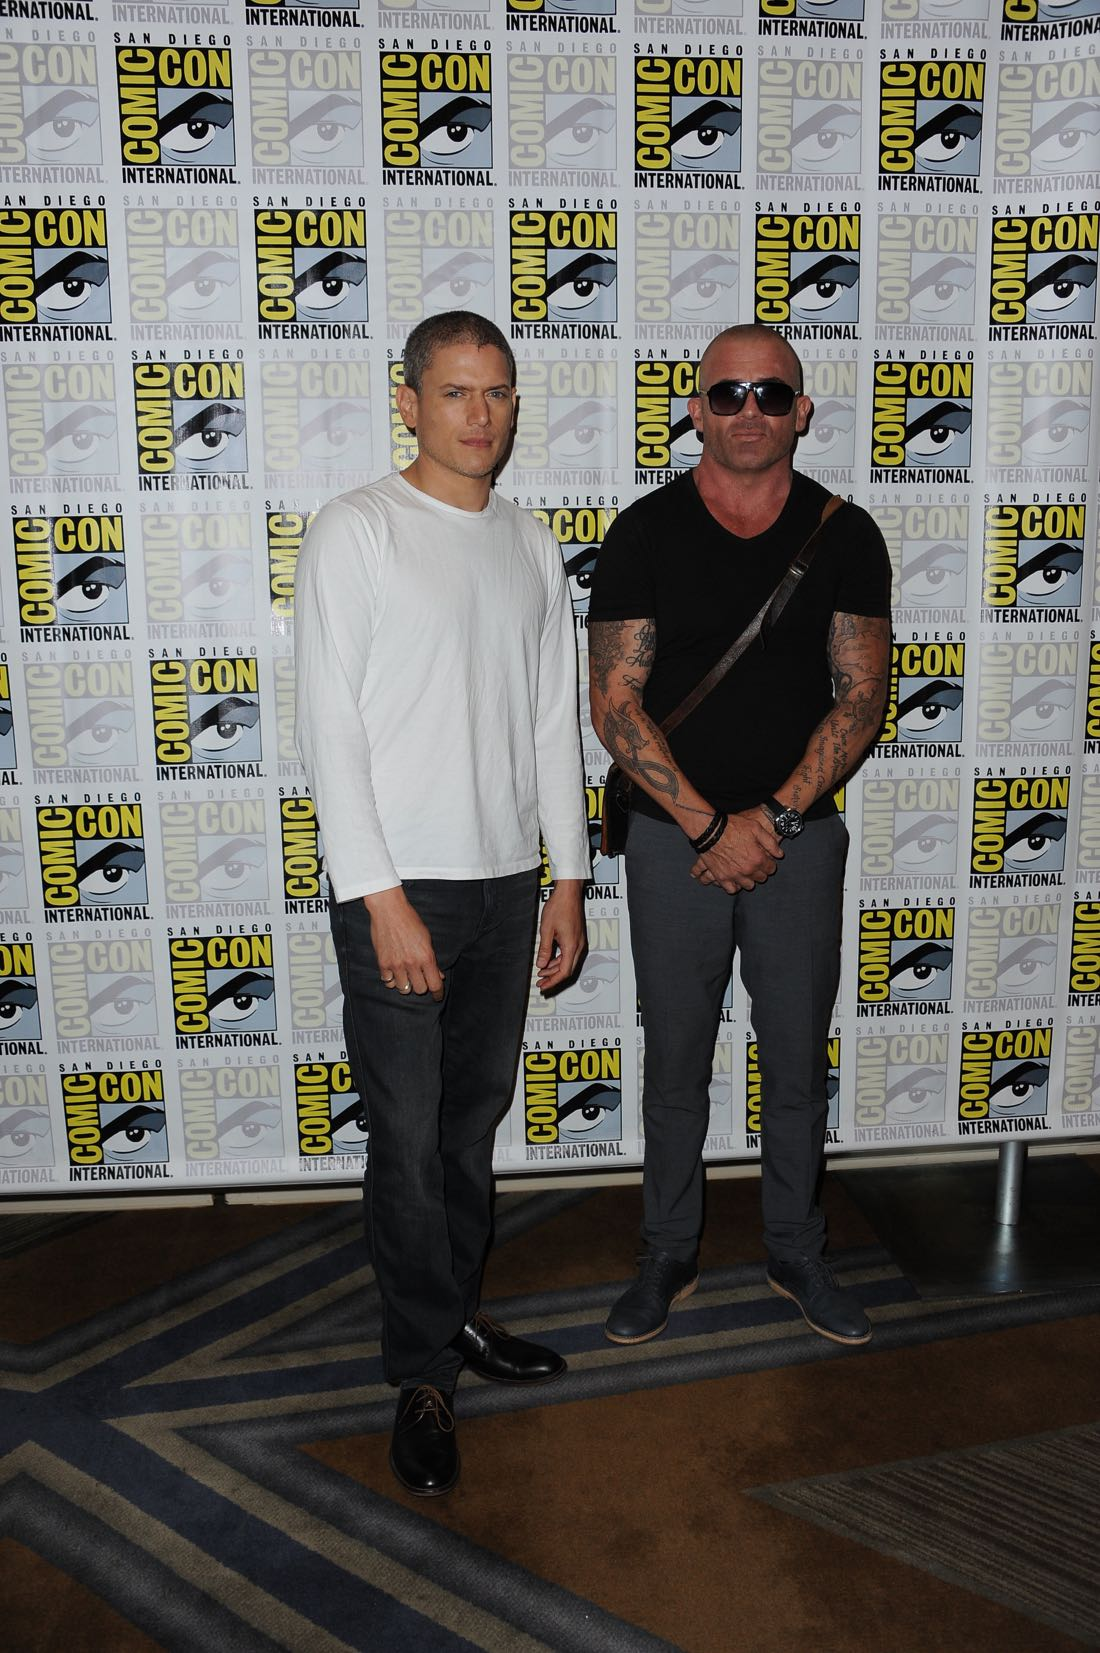 FOX FANFARE AT SAN DIEGO COMIC-CON © 2016: PRISON BREAK cast members Wentworth Miller and Dominic Purcell during the PRISON BREAK press room on Sunday, July 24 at the FOX FANFARE AT SAN DIEGO COMIC-CON © 2016. CR: Scott Kirkland/FOX © 2016 FOX BROADCASTING